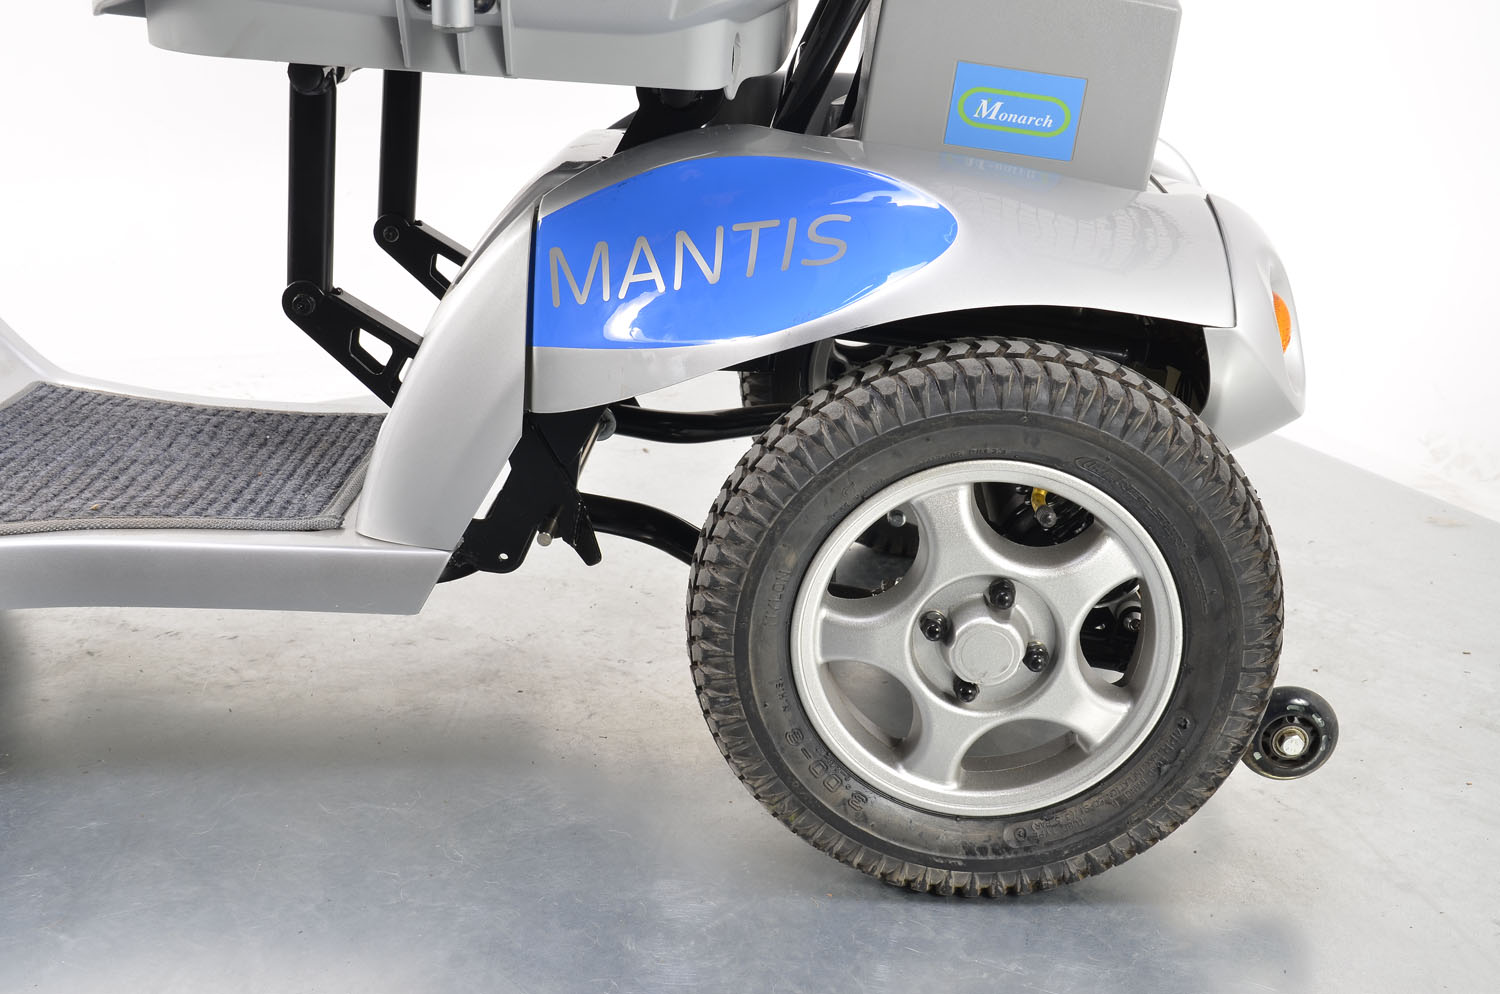 Monarch Mantis 8mph All Terrain Transportable Mobility Scooter Class 3